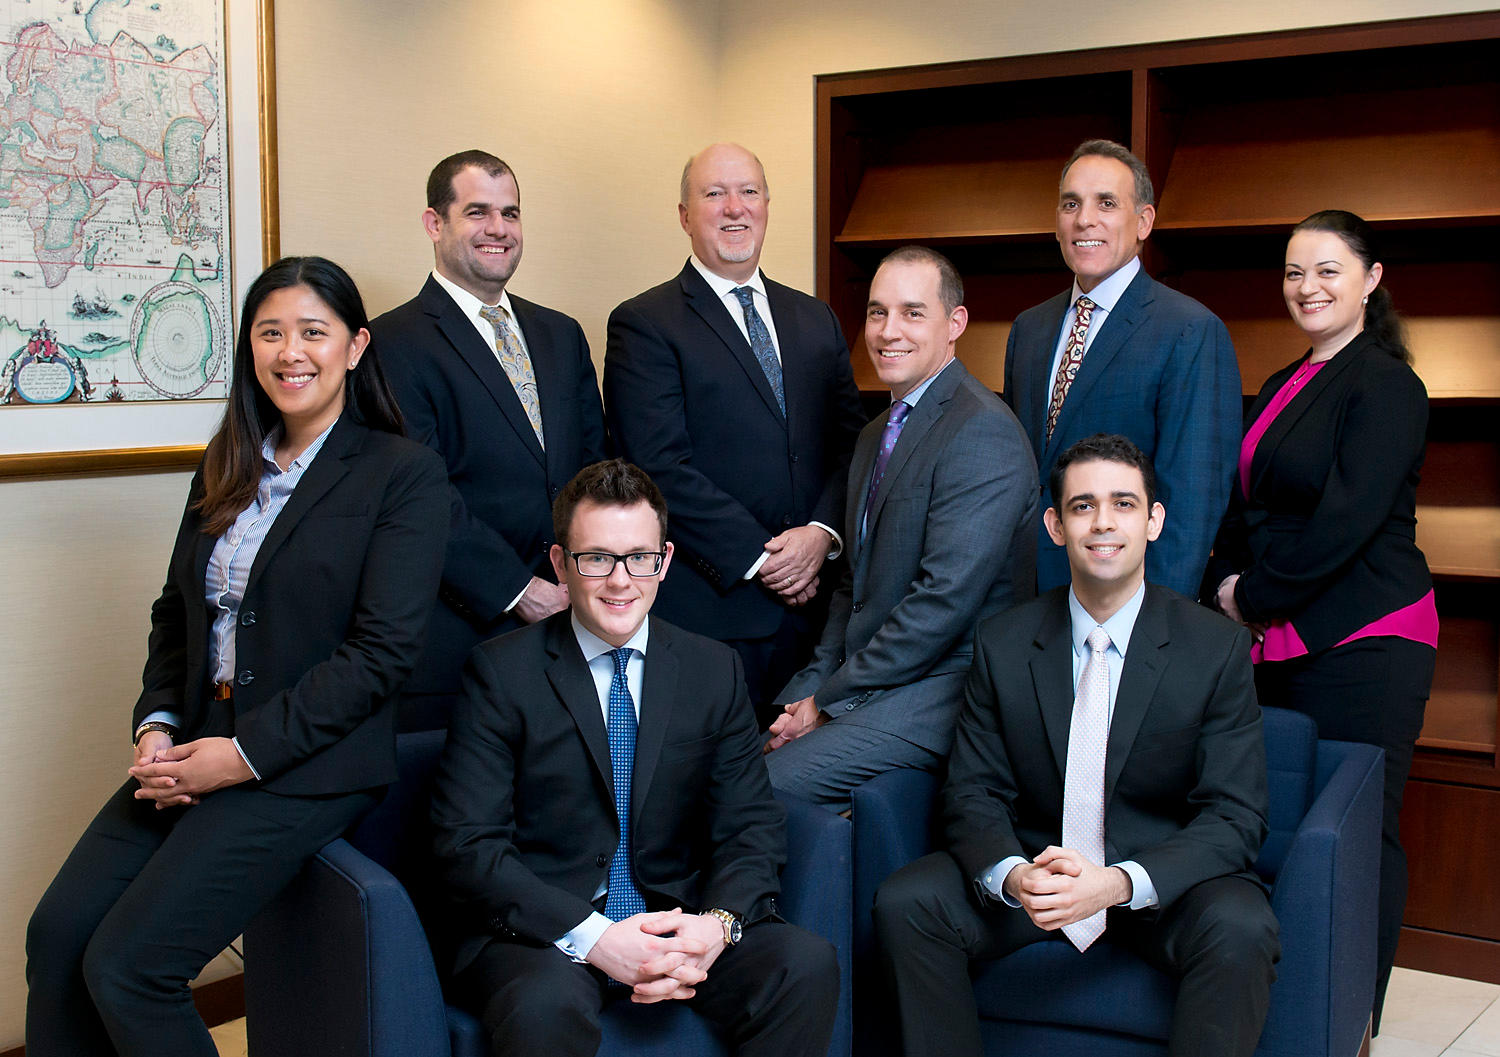 Katz/Bloom Group | Sherman Oaks, CA | Morgan Stanley Wealth Management